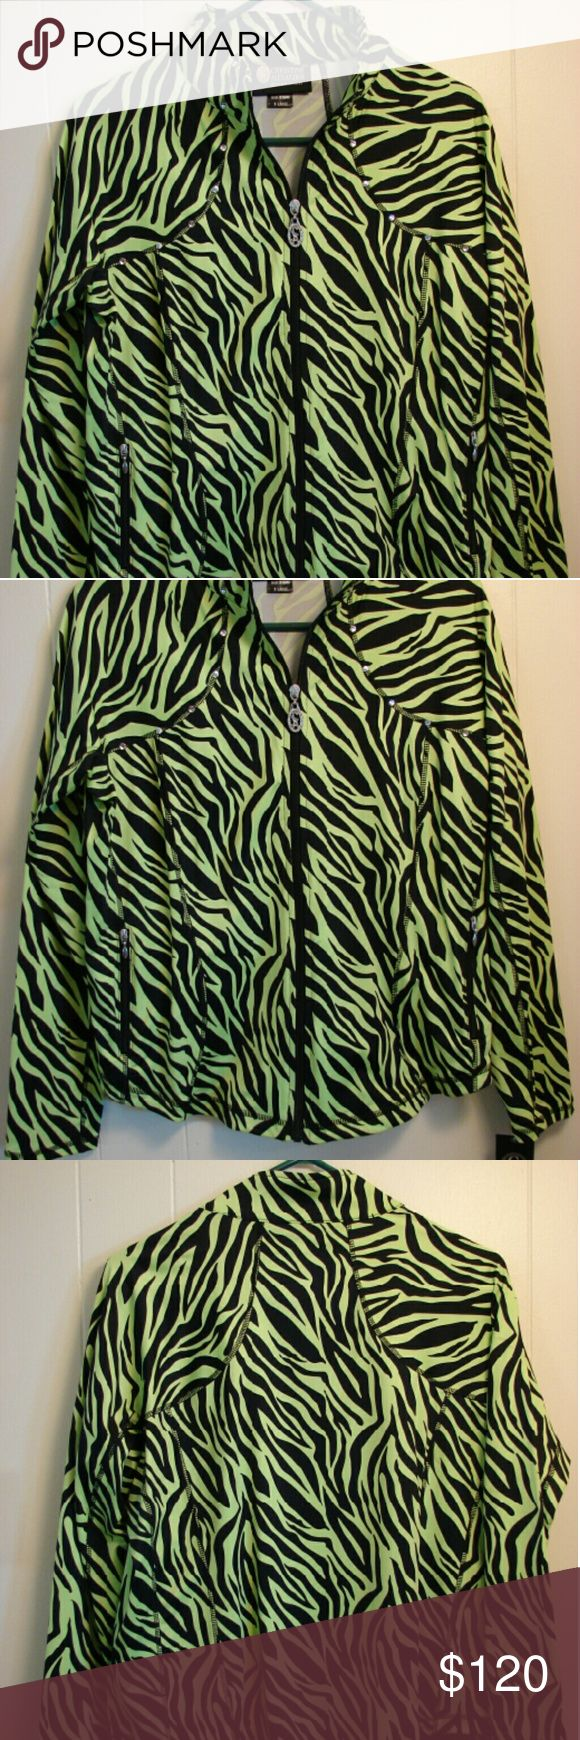 Christine Alexandra jacket Lime green and black zebra print. Stretchy fabric. Zip front with swarovski crystal details. 90% nylon, 10% spandex. Side zip pockets. See matching tank top in separate listing. Christine Alexander Jackets & Coats